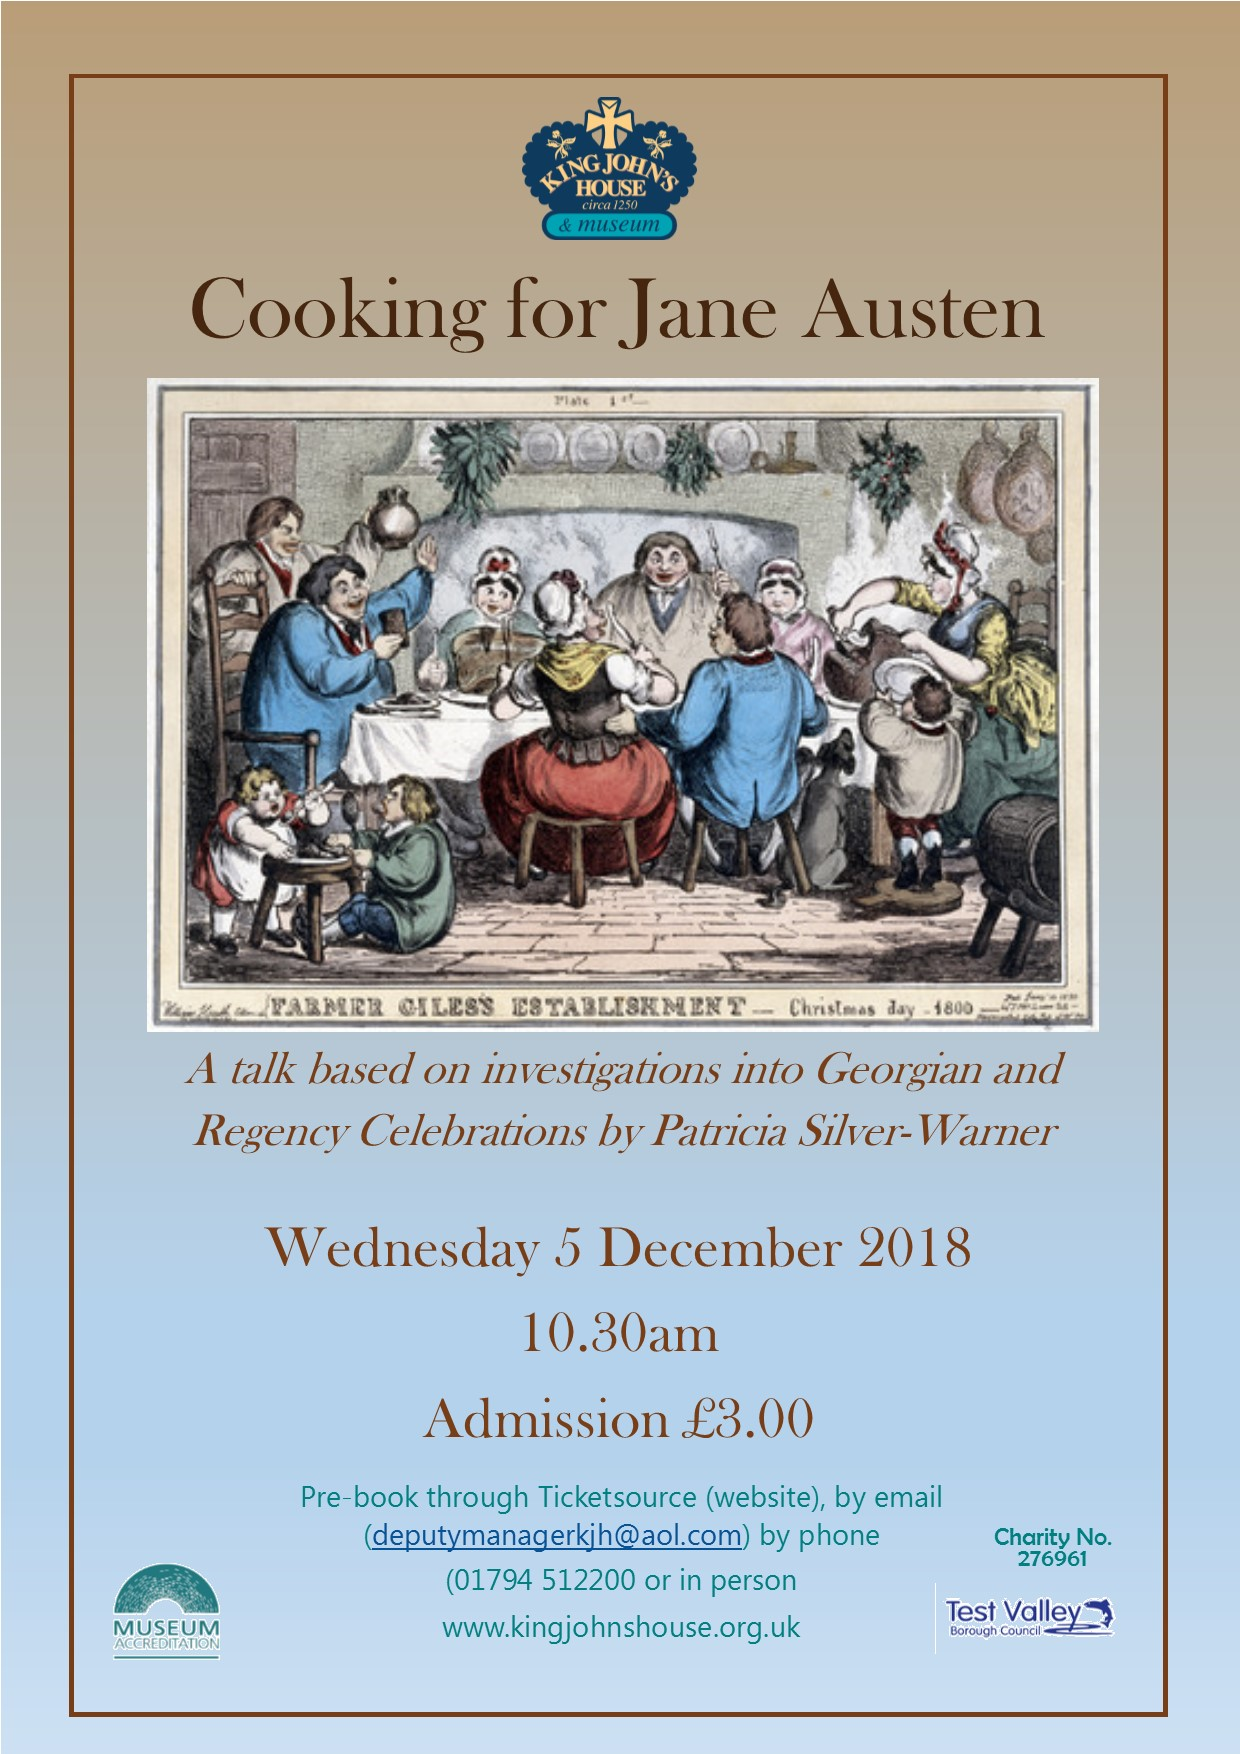 Cooking for Jane Austen